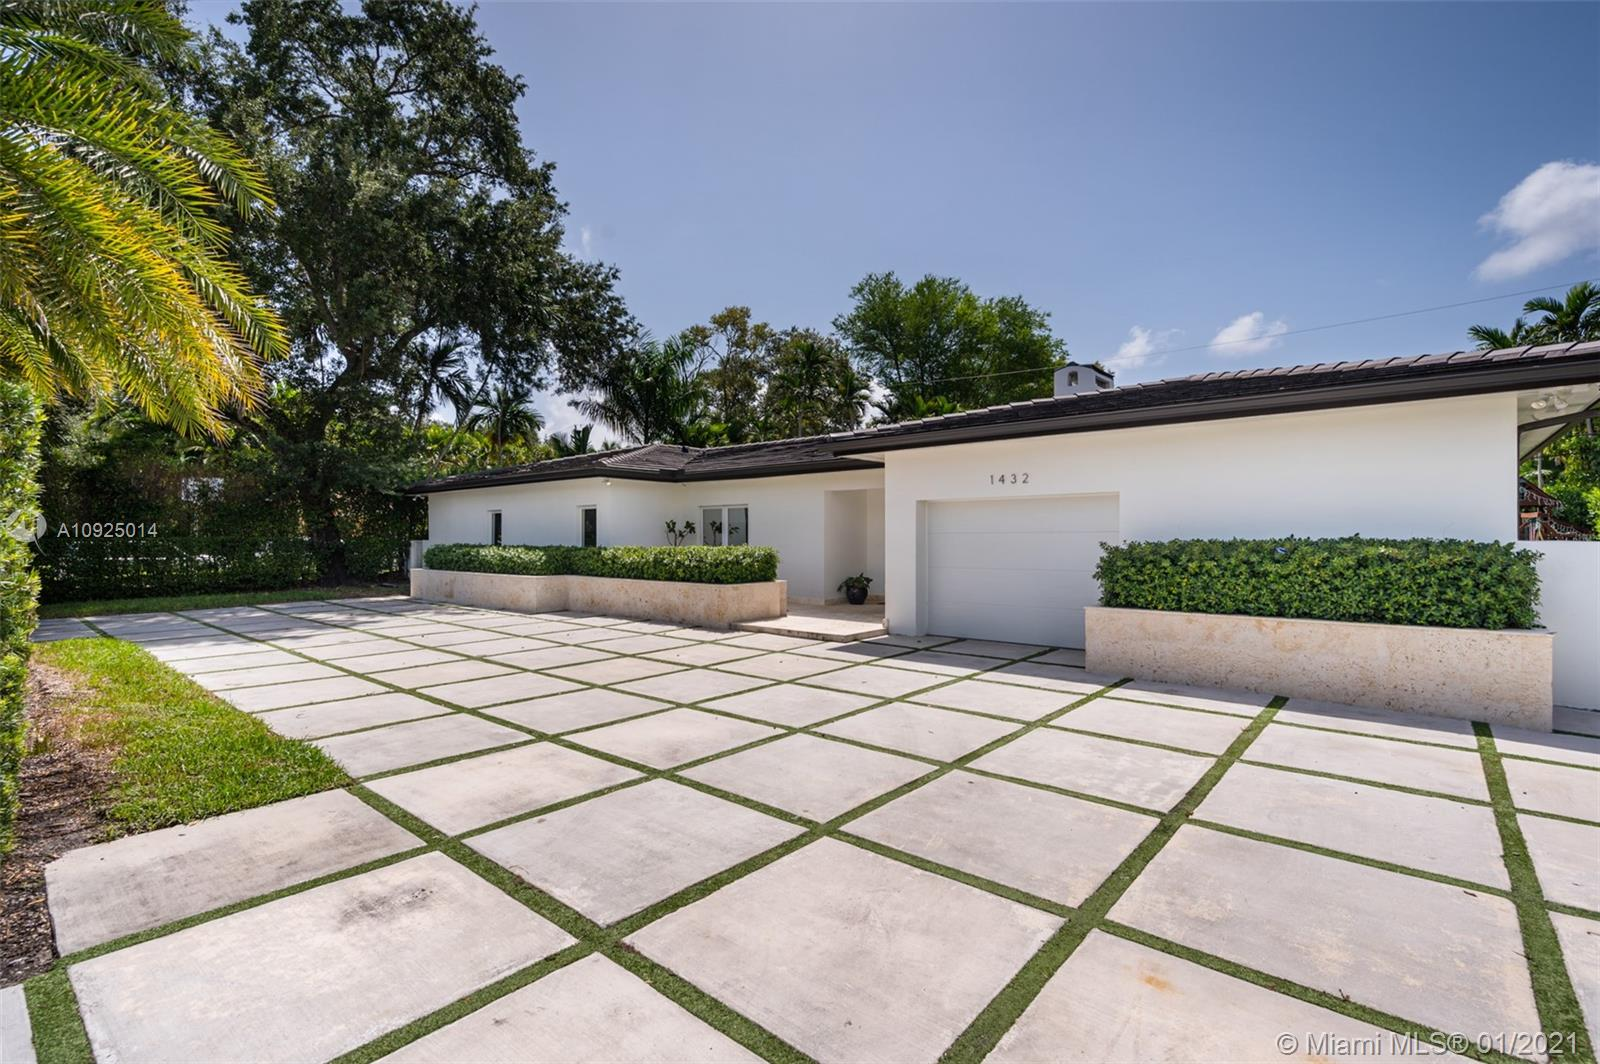 Completely renovated in 2017, this inviting residence boasts a classic contemporary design featuring an open floorplan of 5bed/5.5 baths sitting on an 11,000+ sqft lot.  With 4000 sqft of clean modern lines and open spaces, high ceilings, lots of natural light, marble throughout, a brand-new roof, 2 new AC units, impact windows, an open eat-in kitchen, spacious bedrooms, luxurious master suite with a walk-in closet, guest suite on the second floor, and a working fireplace. This home is a must see as it is perfectly located in the heart of Coral Gables, near the new Riviera Country Club with easy access to highways and near great schools. Surrounded by lush landscaping, this home is great for indoor and outdoor entertaining with a new pool and outdoor shower enclosed in artificial grass.